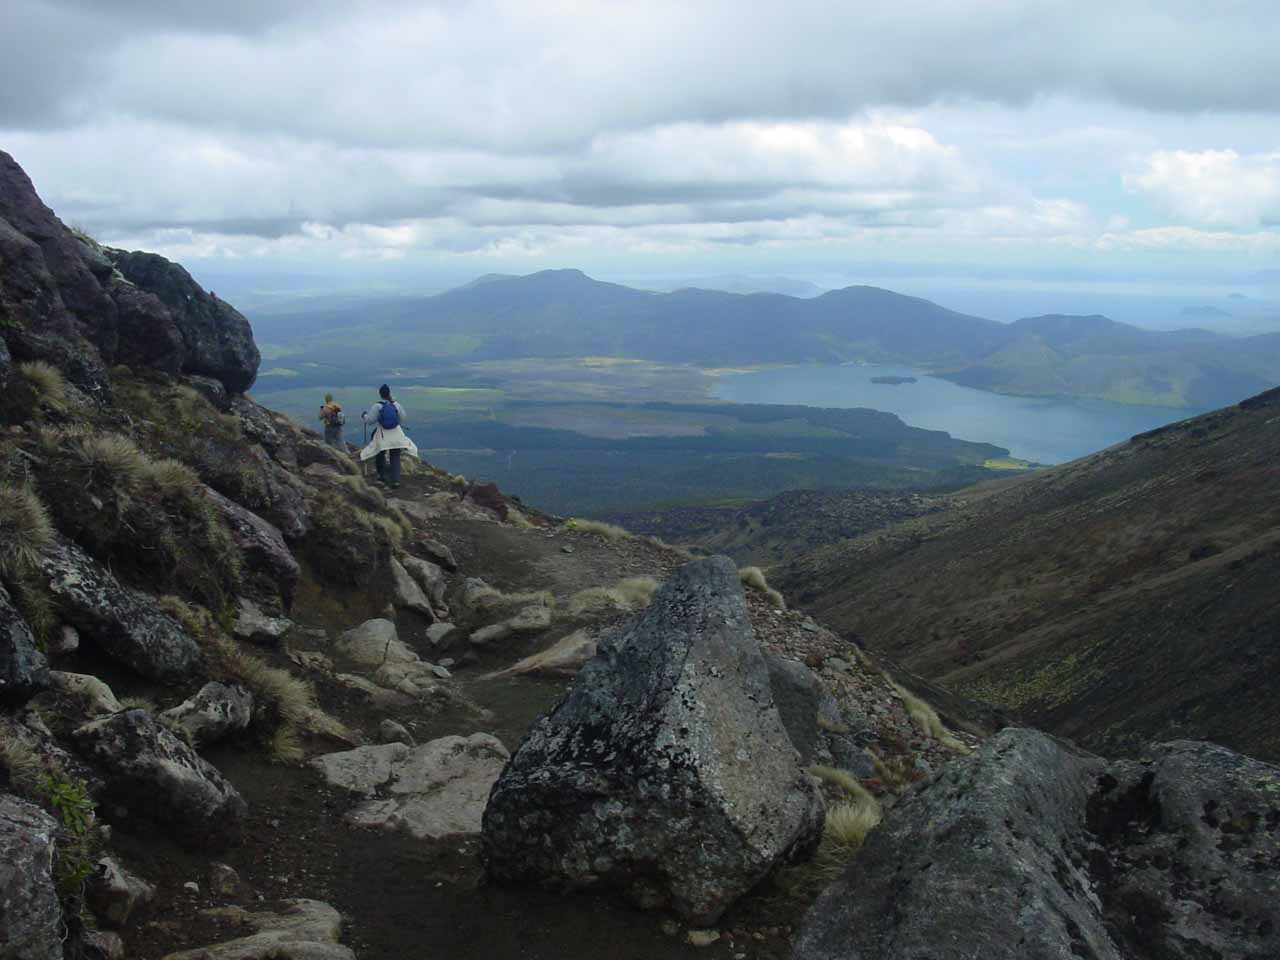 Finally starting to see the north side of the Tongariro Crossing